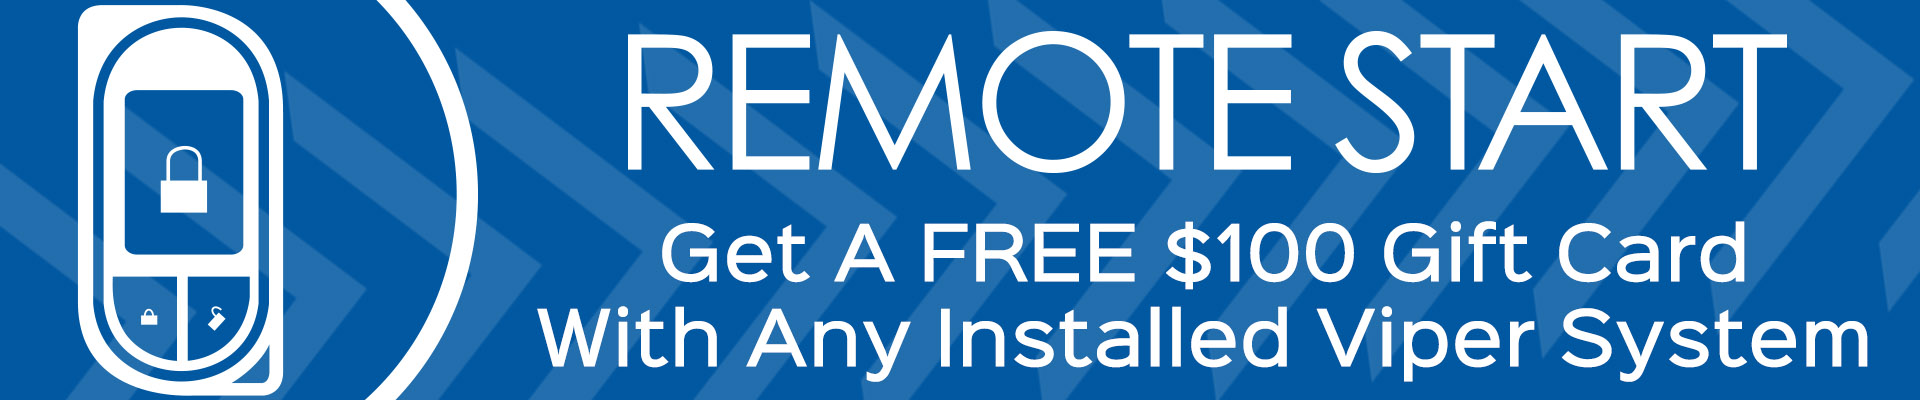 Free $100 Gift Card With Remote Start